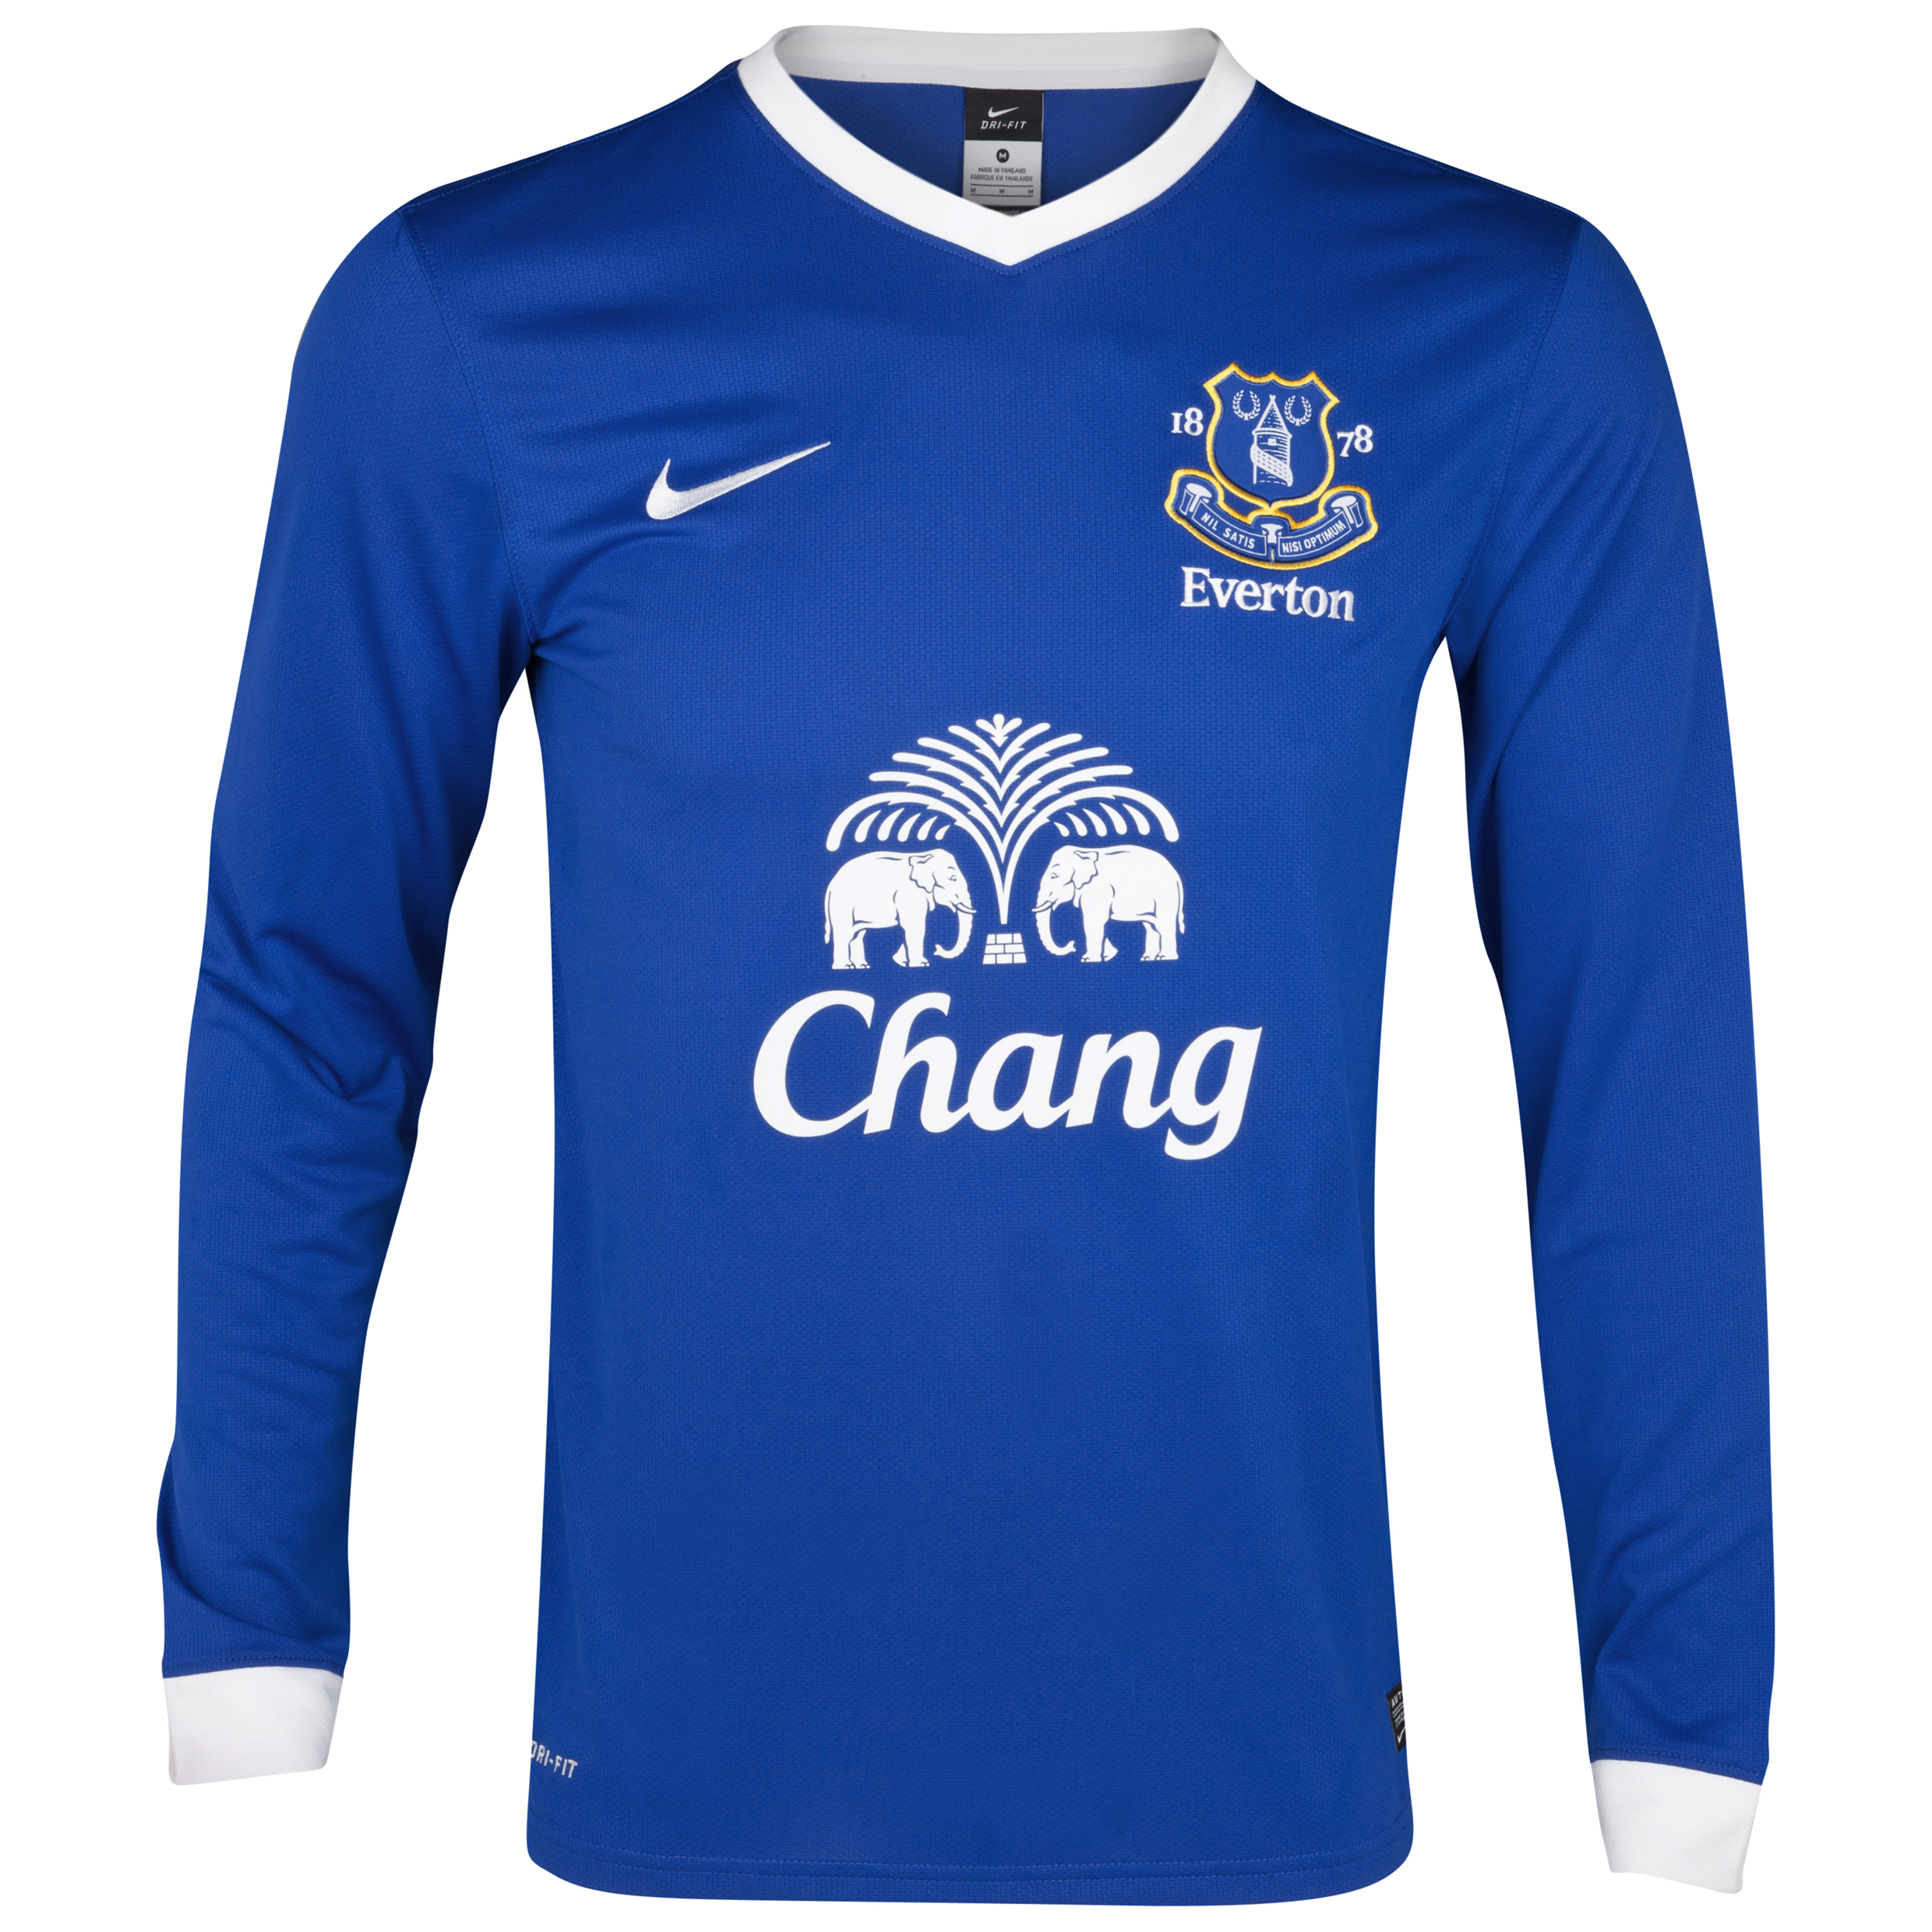 Everton Home Shirt 2012/13 Long Sleeved